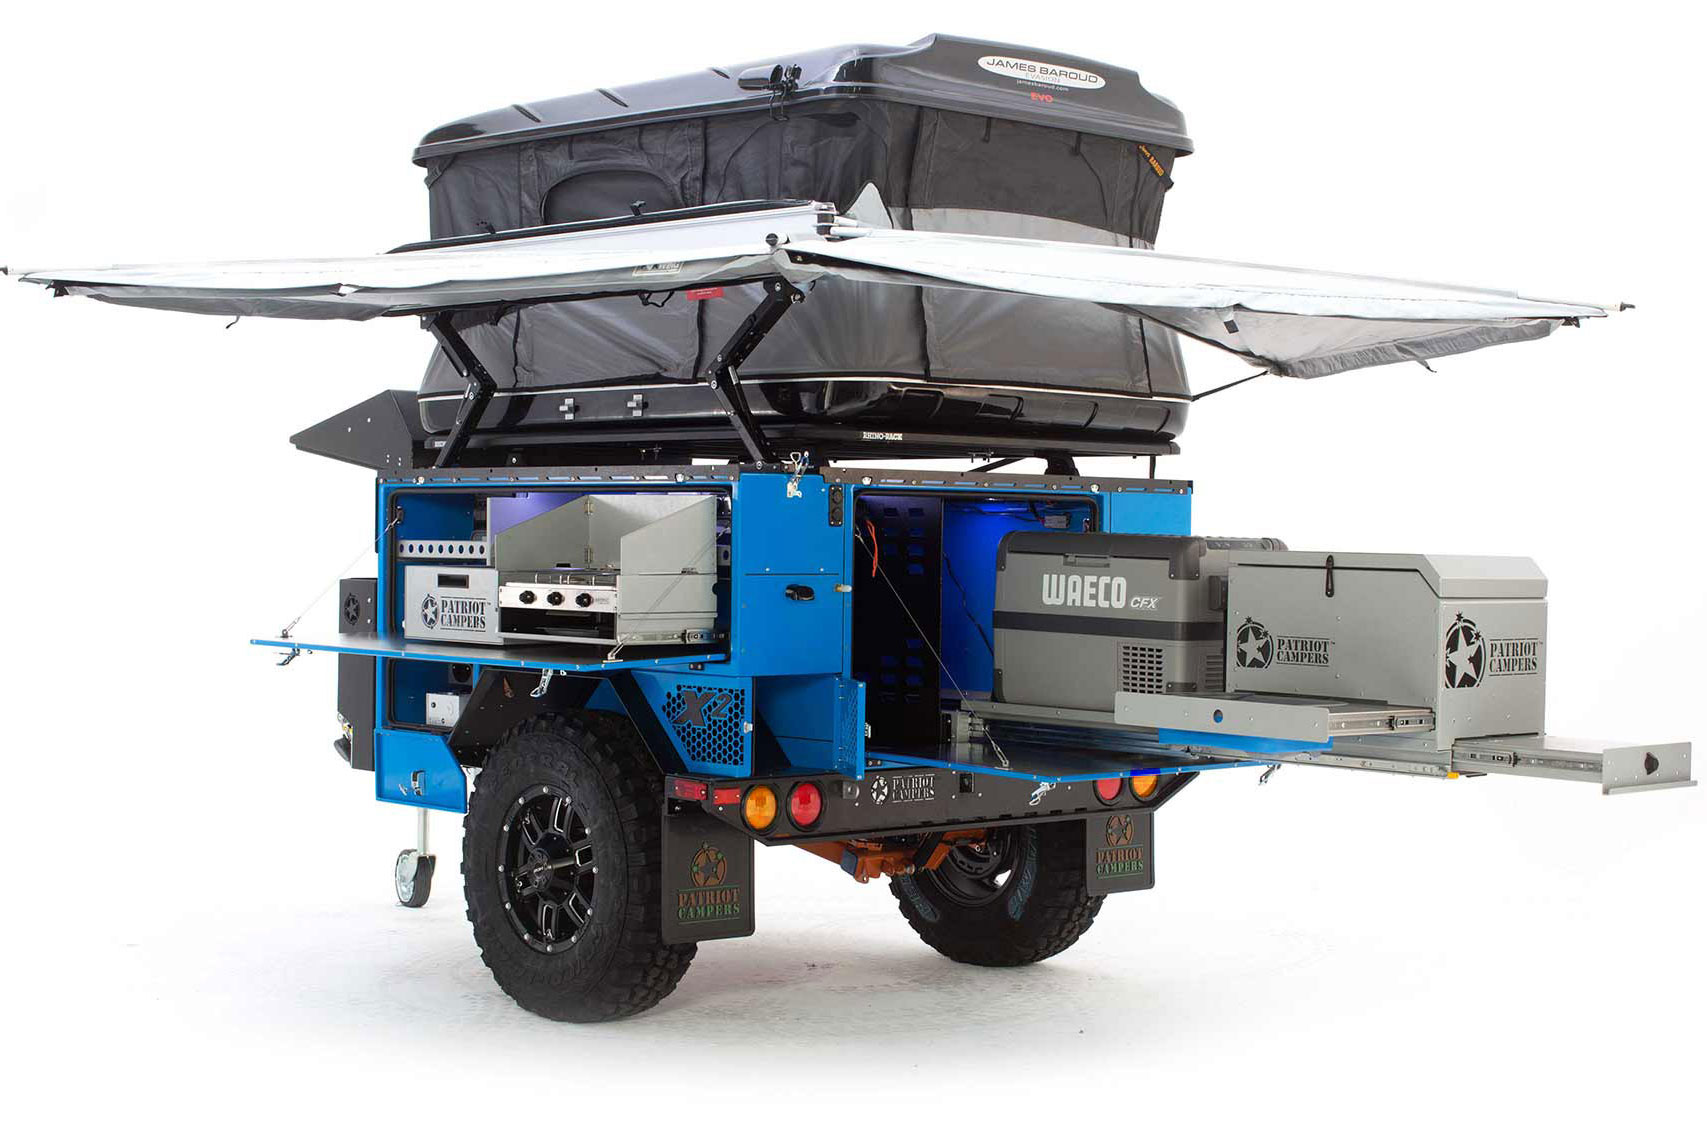 patriot-camper-trailer-lead-image